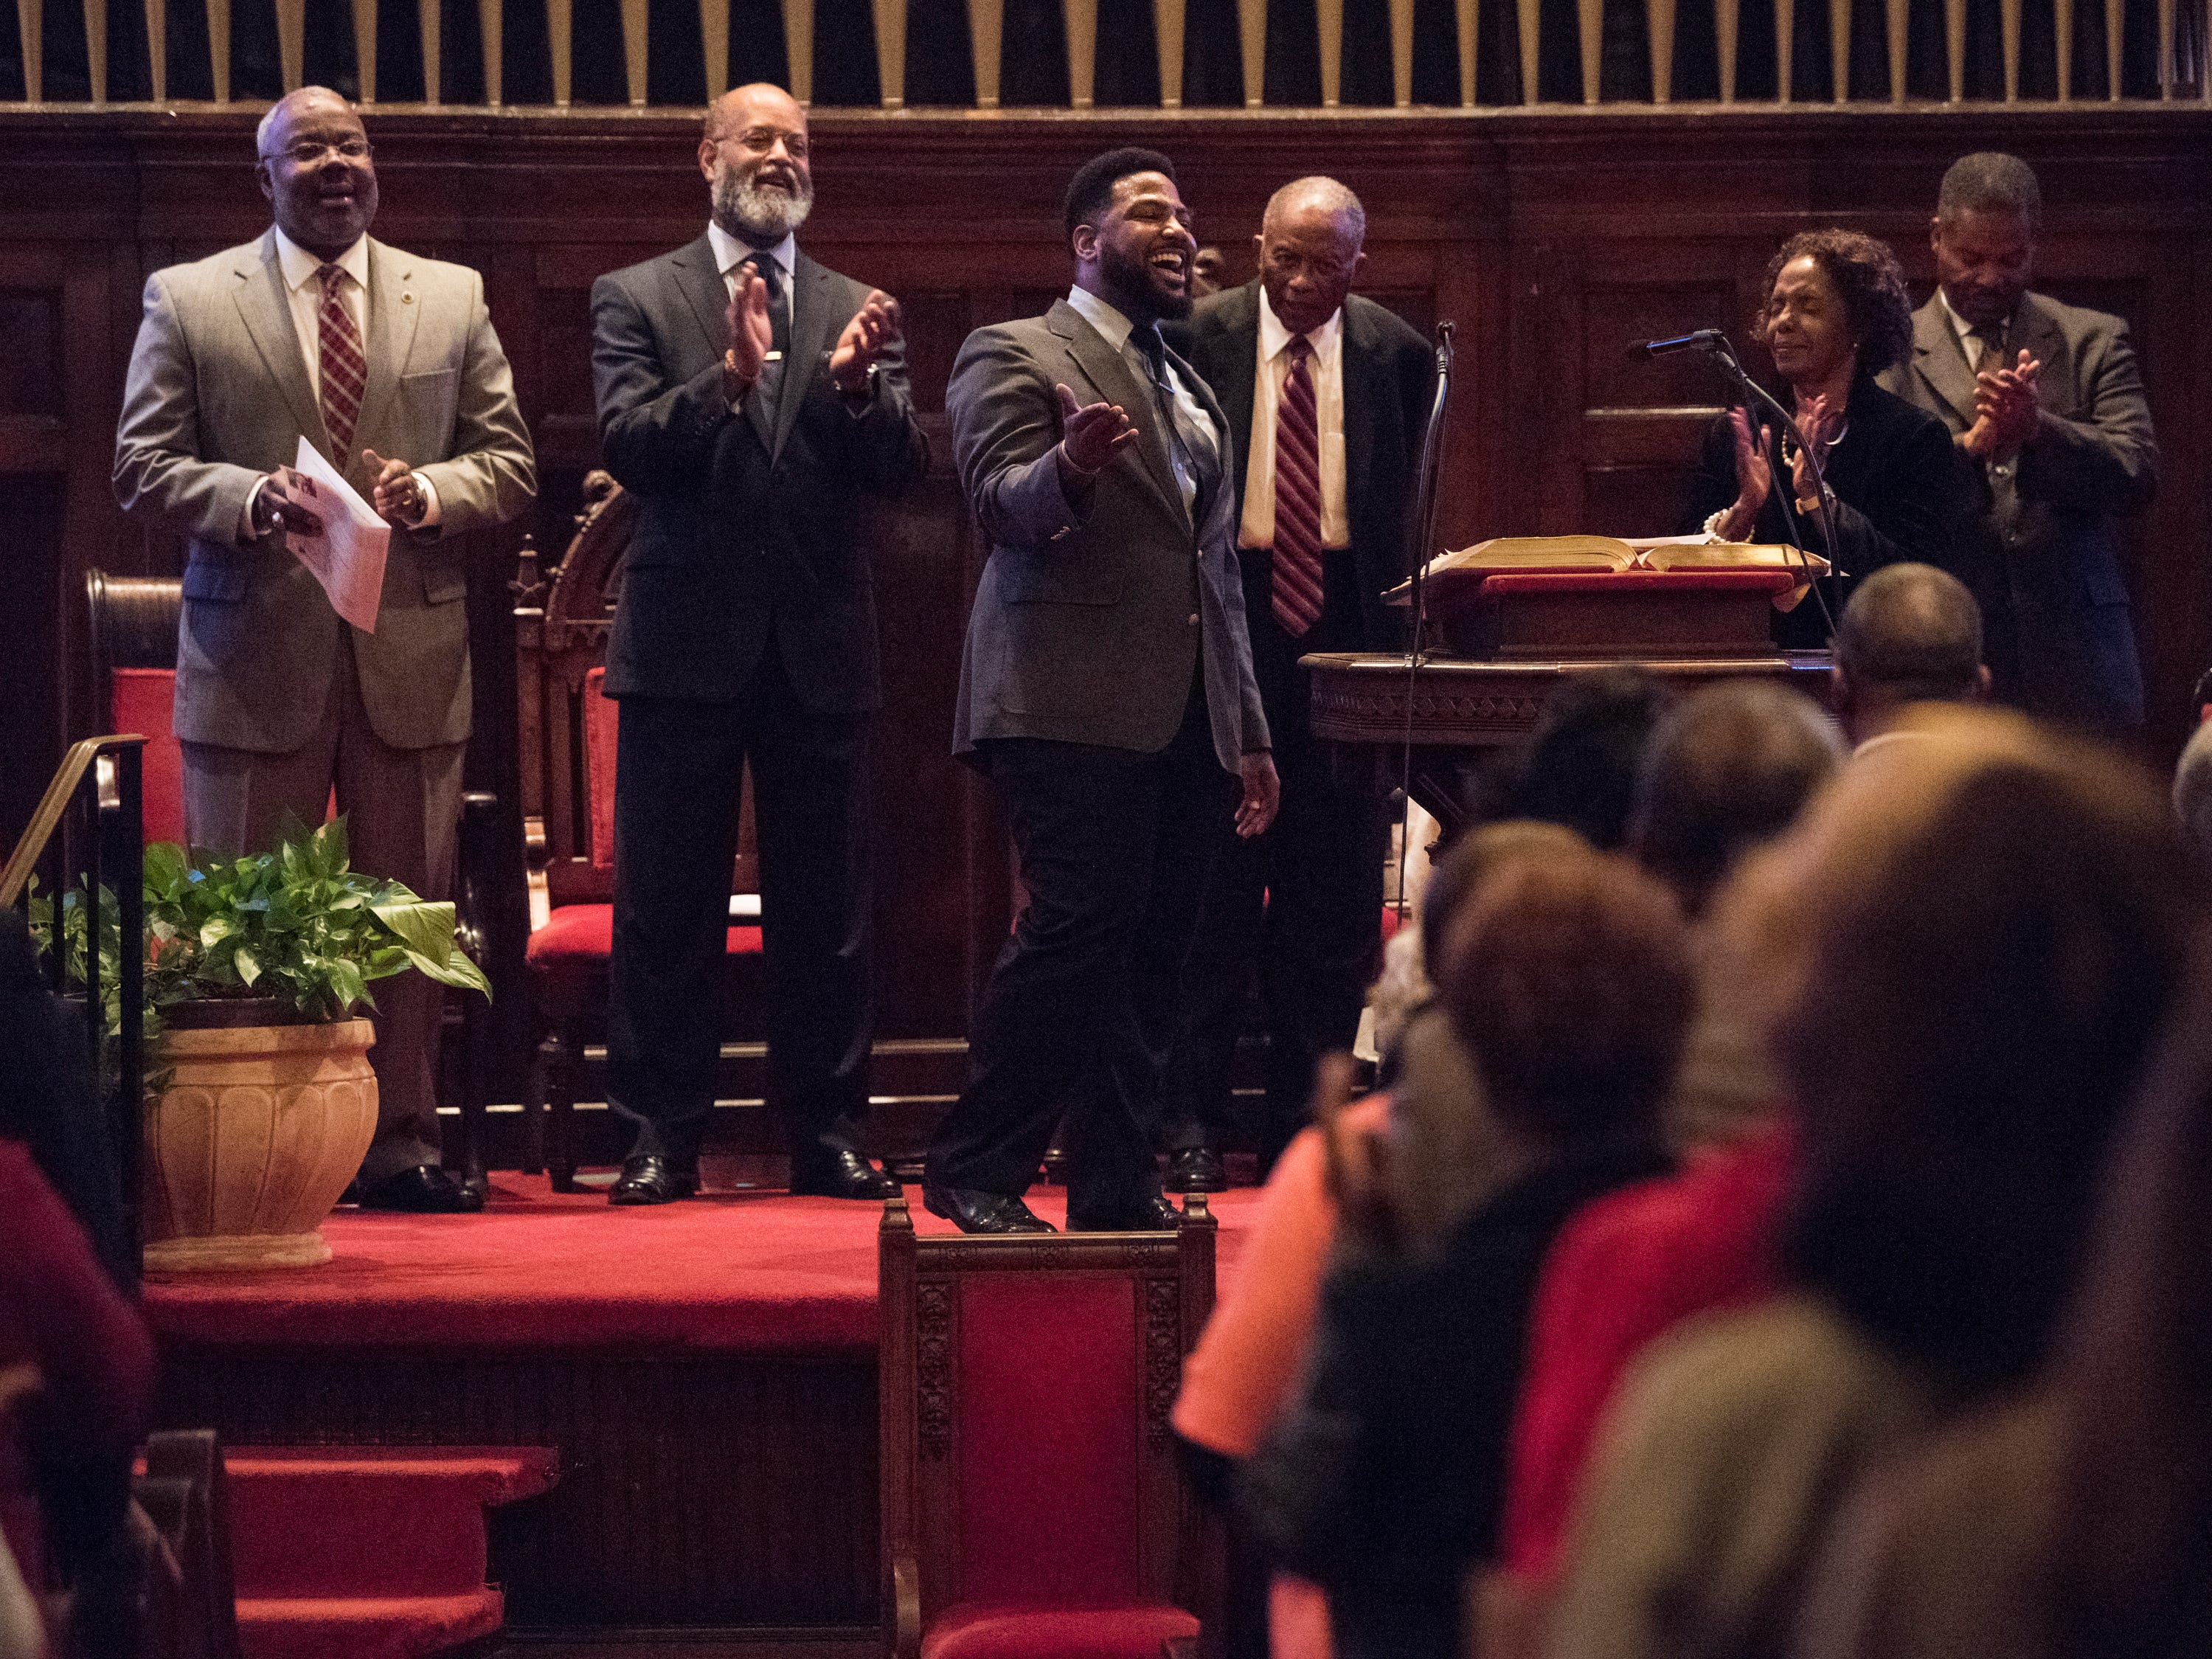 Michael McDonald sings to the crowd during 63rd anniversary of the Montgomery bus boycott ceremony at First Baptist Church in Montgomery, Ala., on Monday, Dec. 3, 2018.